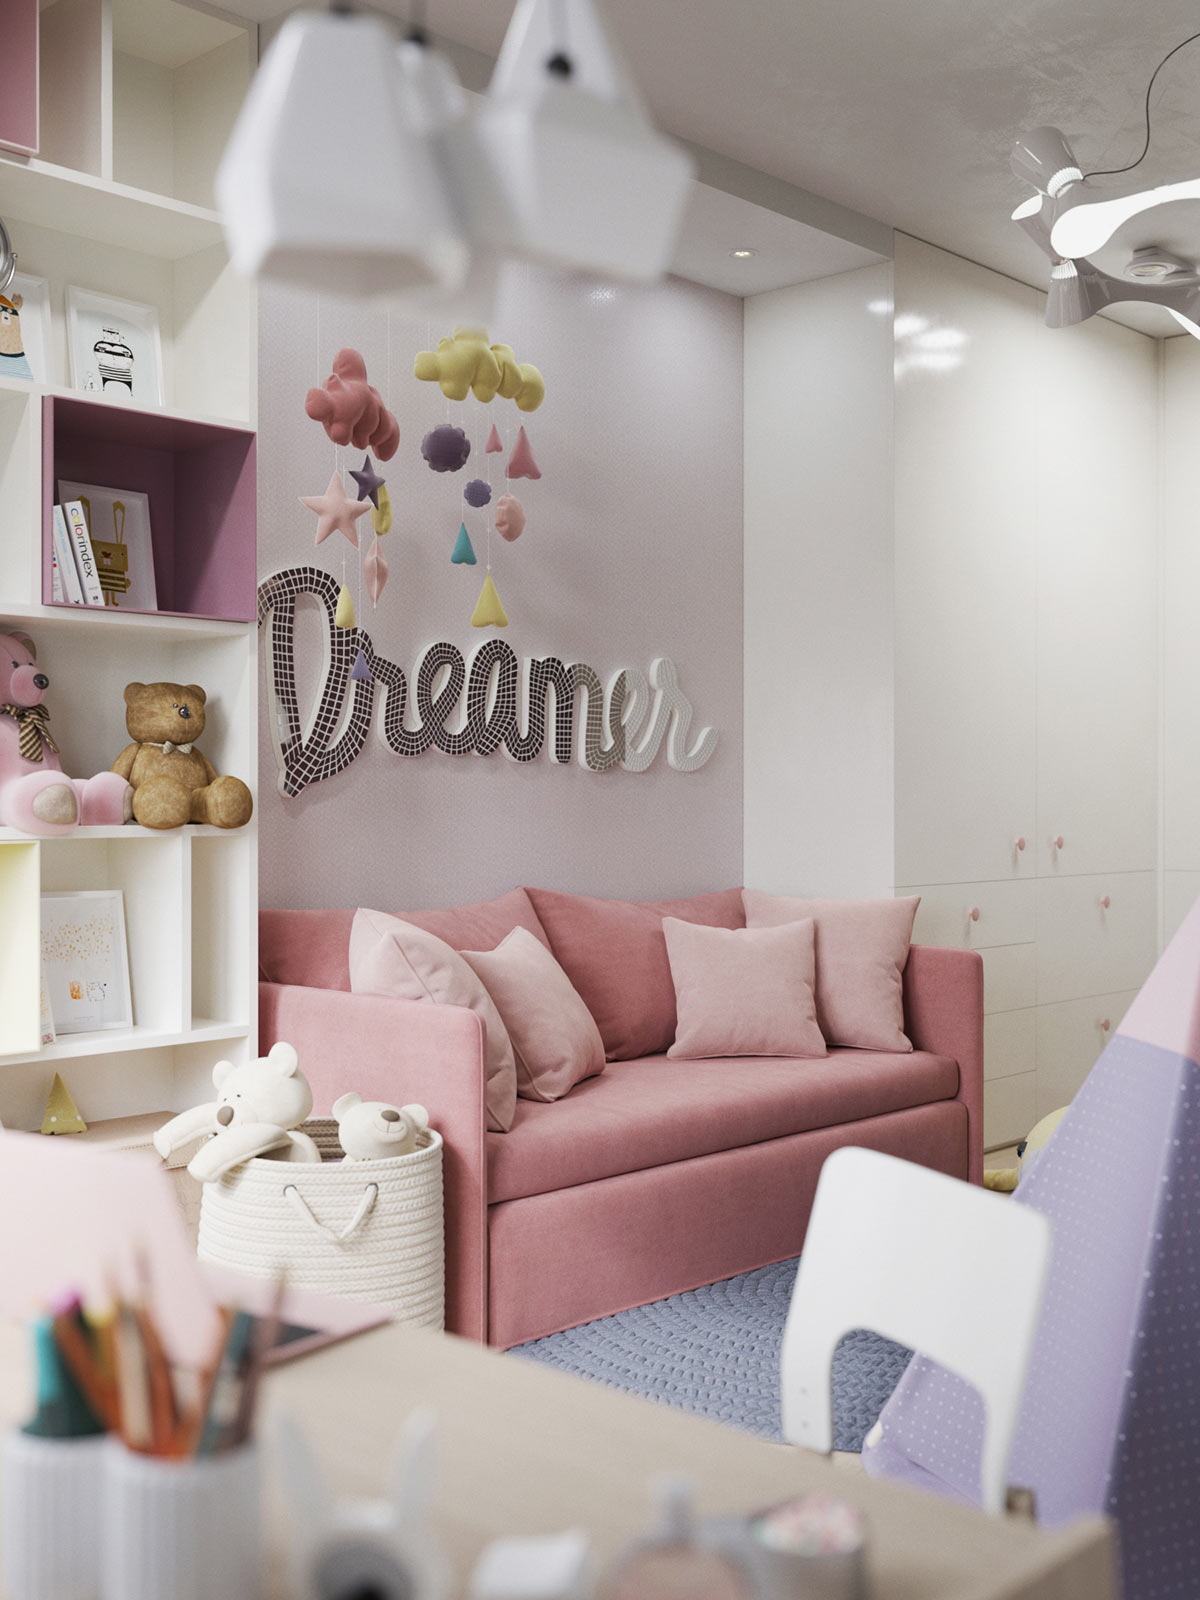 Teenage Rooms: 3 Modern Apartments With Chic Rooms For The Kids